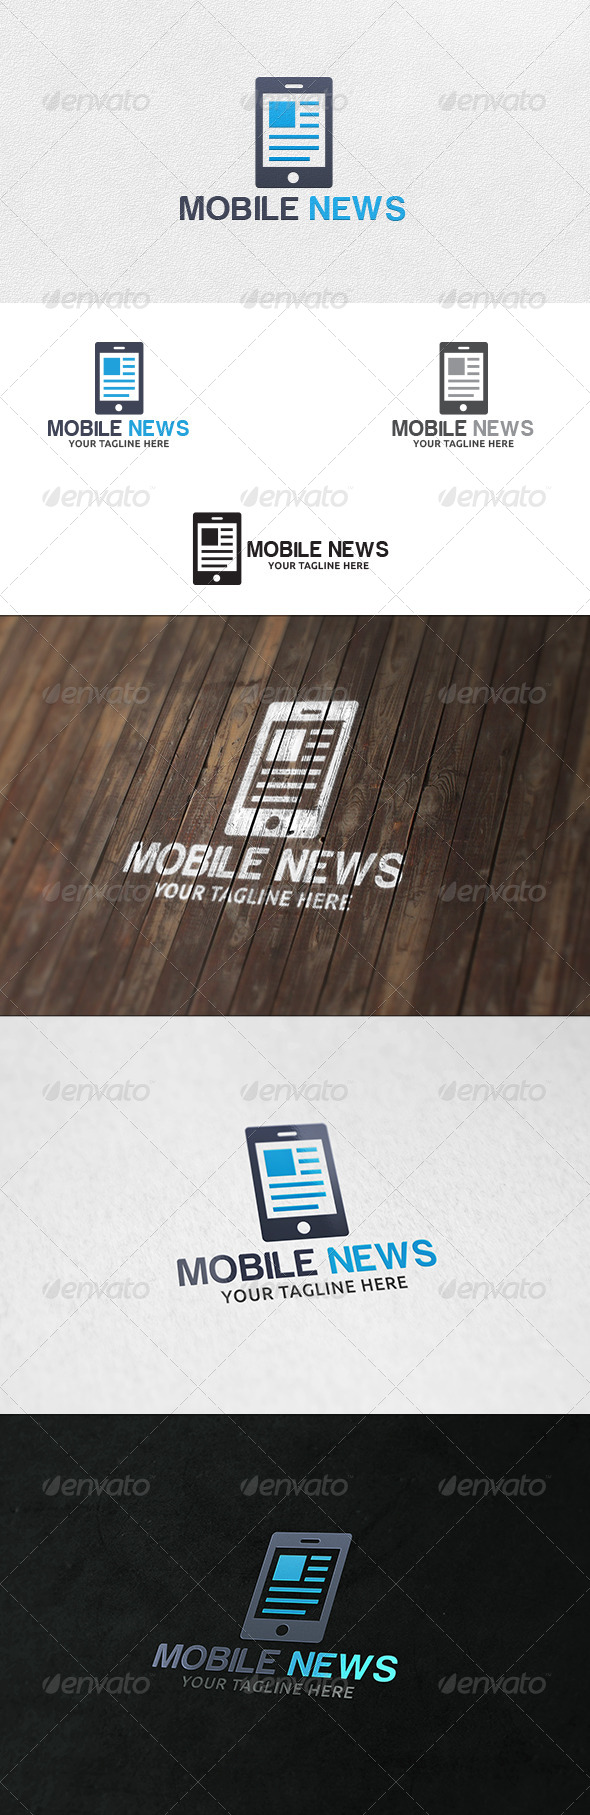 Mobile News - Logo Template - Vector Abstract